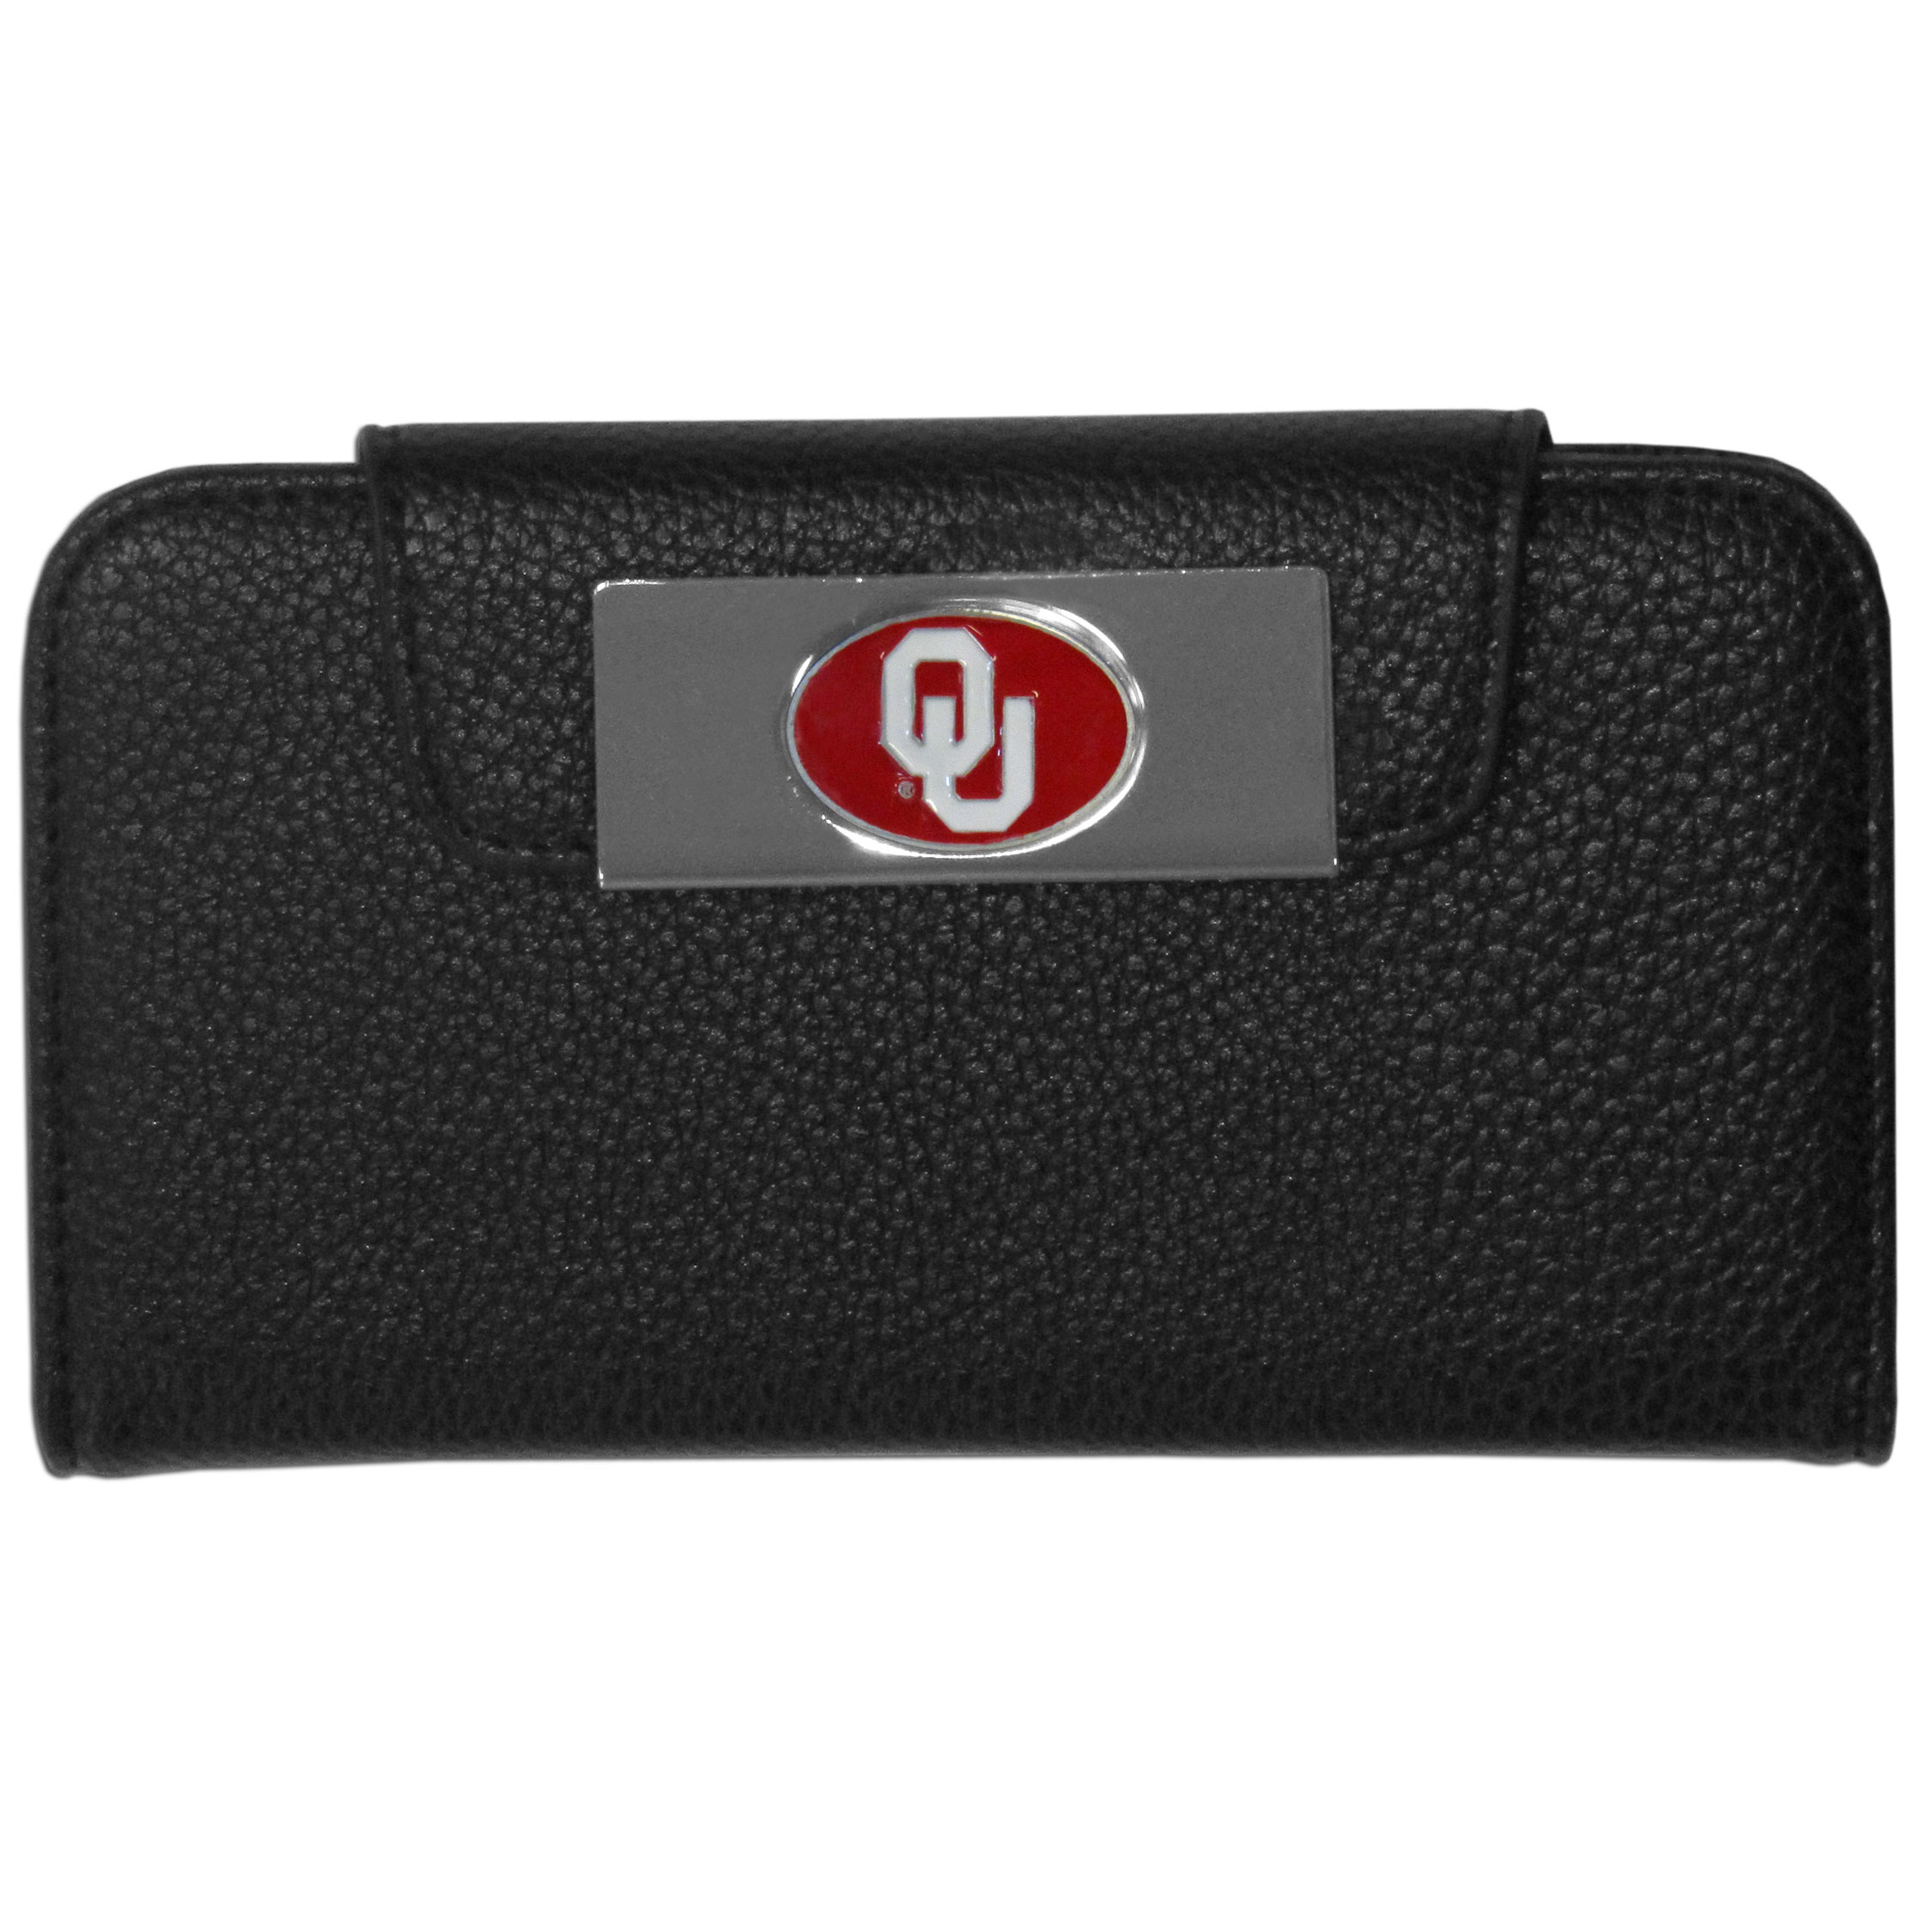 Oklahoma Sooners iPhone 5/5S Wallet Case - This new & wildly popular case is ideal for those who like to travel light! The stylish case has an inner hard shell that securely holds your phone while allowing complete access to the phone's functionality. The flip cover has slots for credit cards, business cards and identification. The magnetic flip cover has a metal Oklahoma Sooners emblem on a high polish chrome backing. Fits the iPhone 5/5S